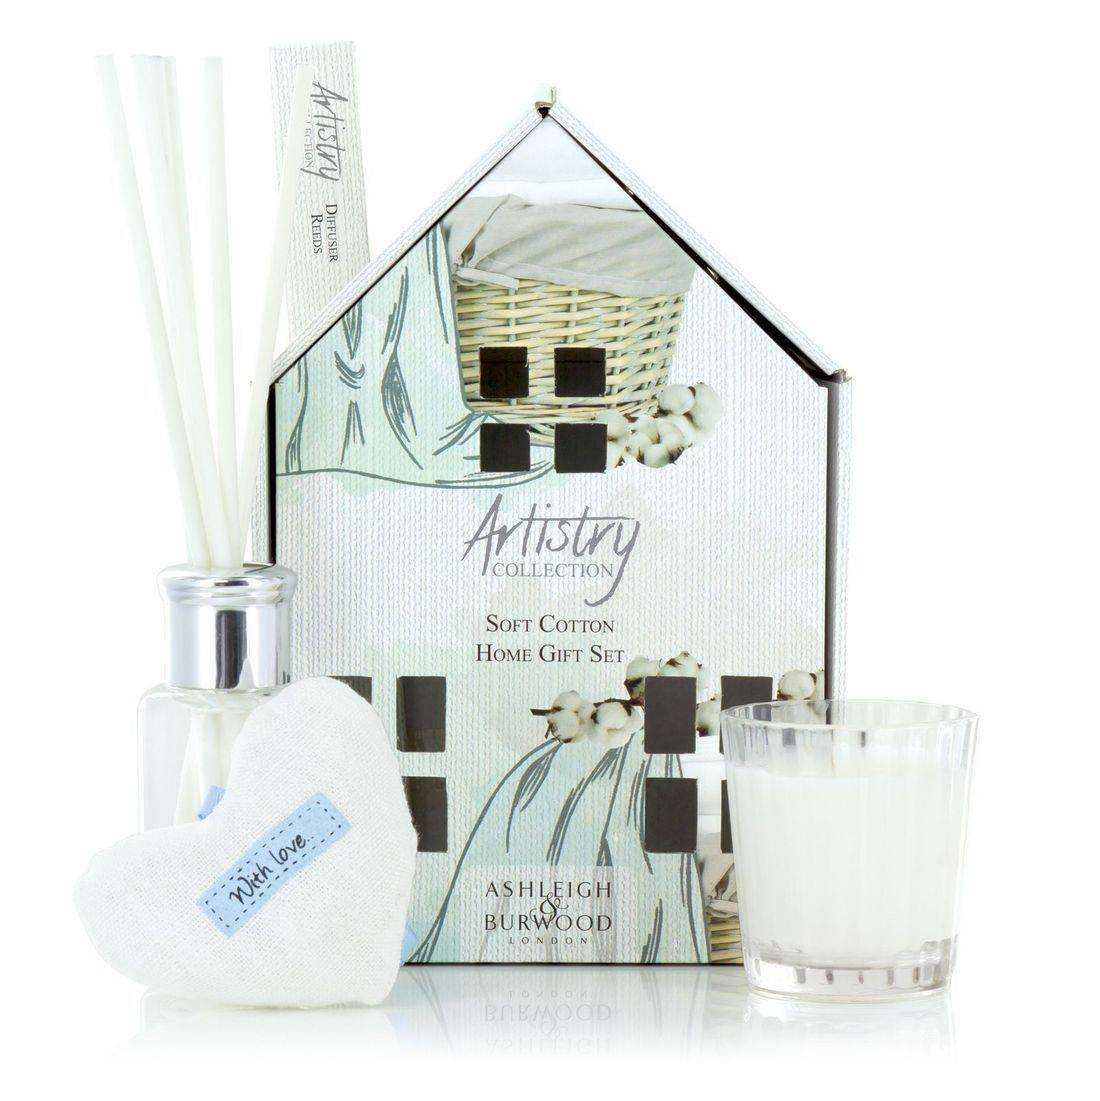 Ashleigh & Burwood The Artistry Collection home Fragrance Scented Candles Gift